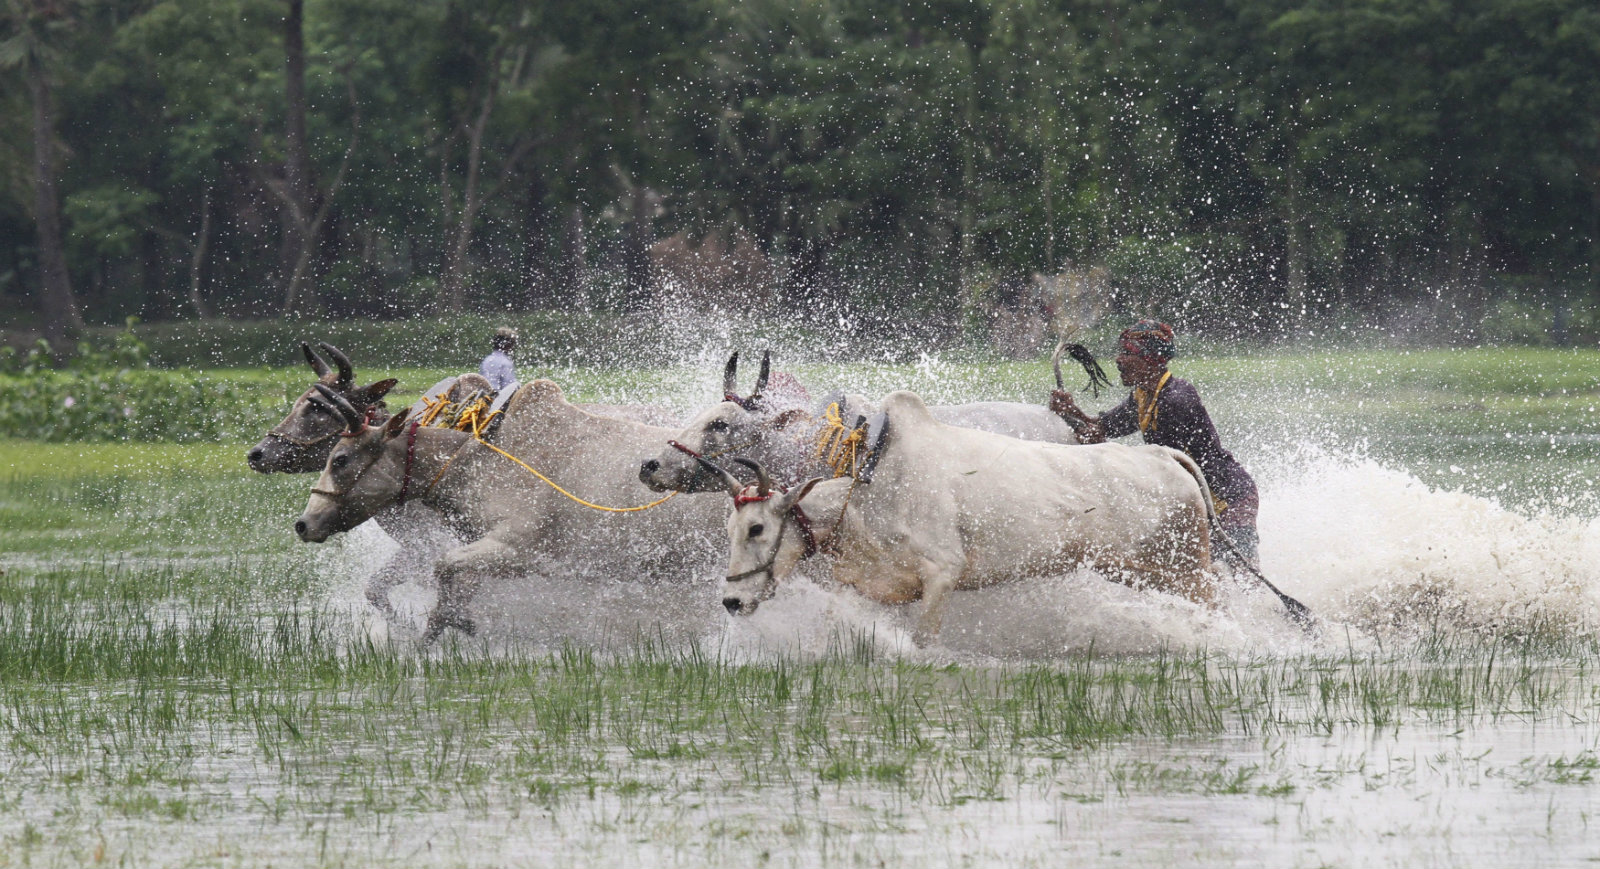 A farmer with his bulls takes part in the 21st Bull Race at a paddy field in Canning village, in the eastern Indian state of West Bengal July 29, 2012. Fifty-three farmers with 128 bulls from across the state, participated in the two-day long race on Sunday. Winners will be rewarded with daily items such as bicycles, brass pitchers, radio sets, etc. Farmers also participate with the belief that taking part in the race before ploughing their fields will bring good rain and prosperity to their families, and also to encourage young people to take up farming, organisers said.